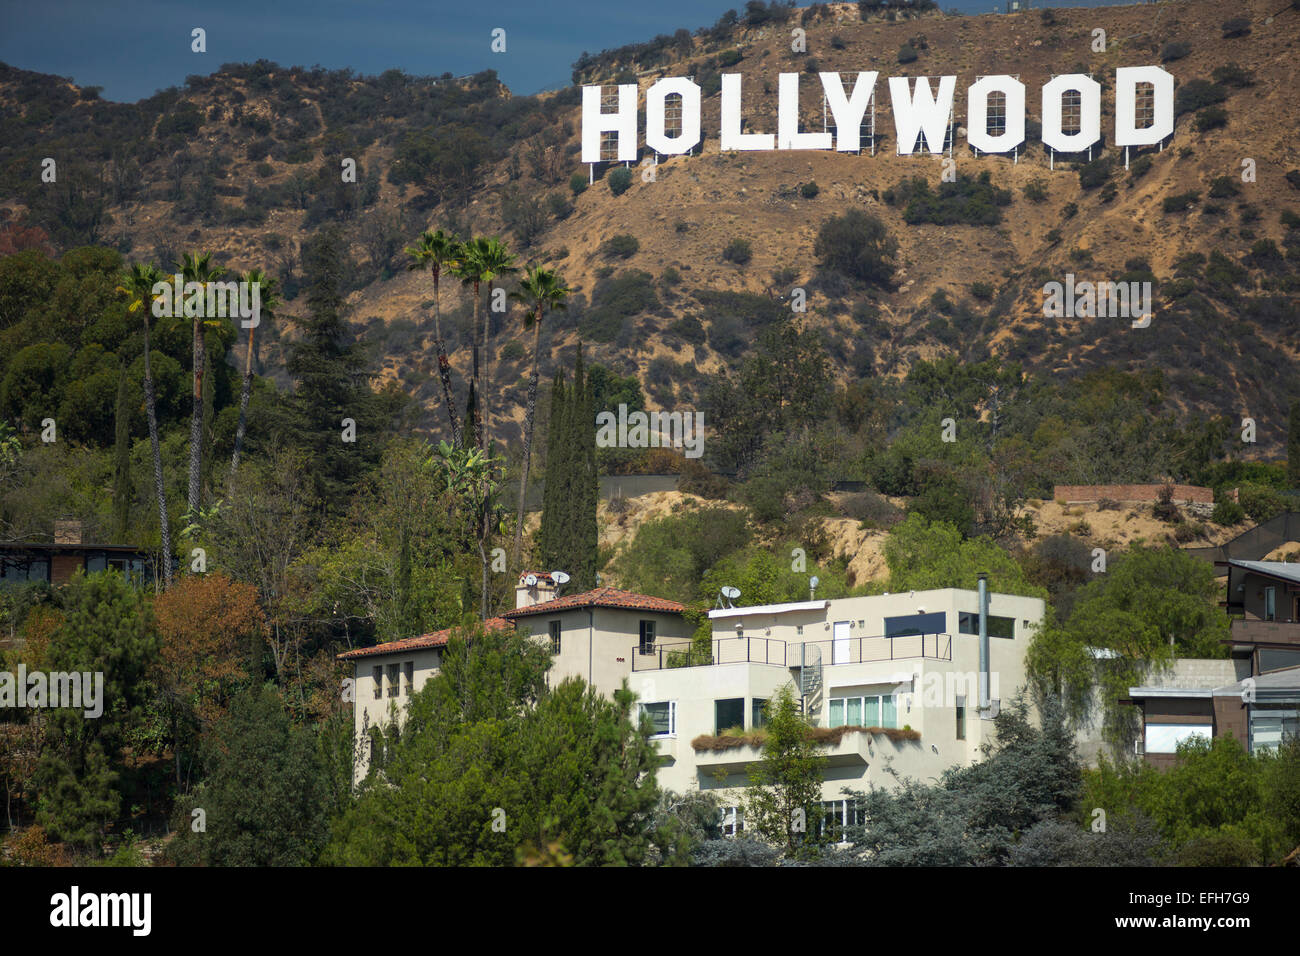 Los Angeles Hollywood Hills High Resolution Stock Photography And Images Alamy